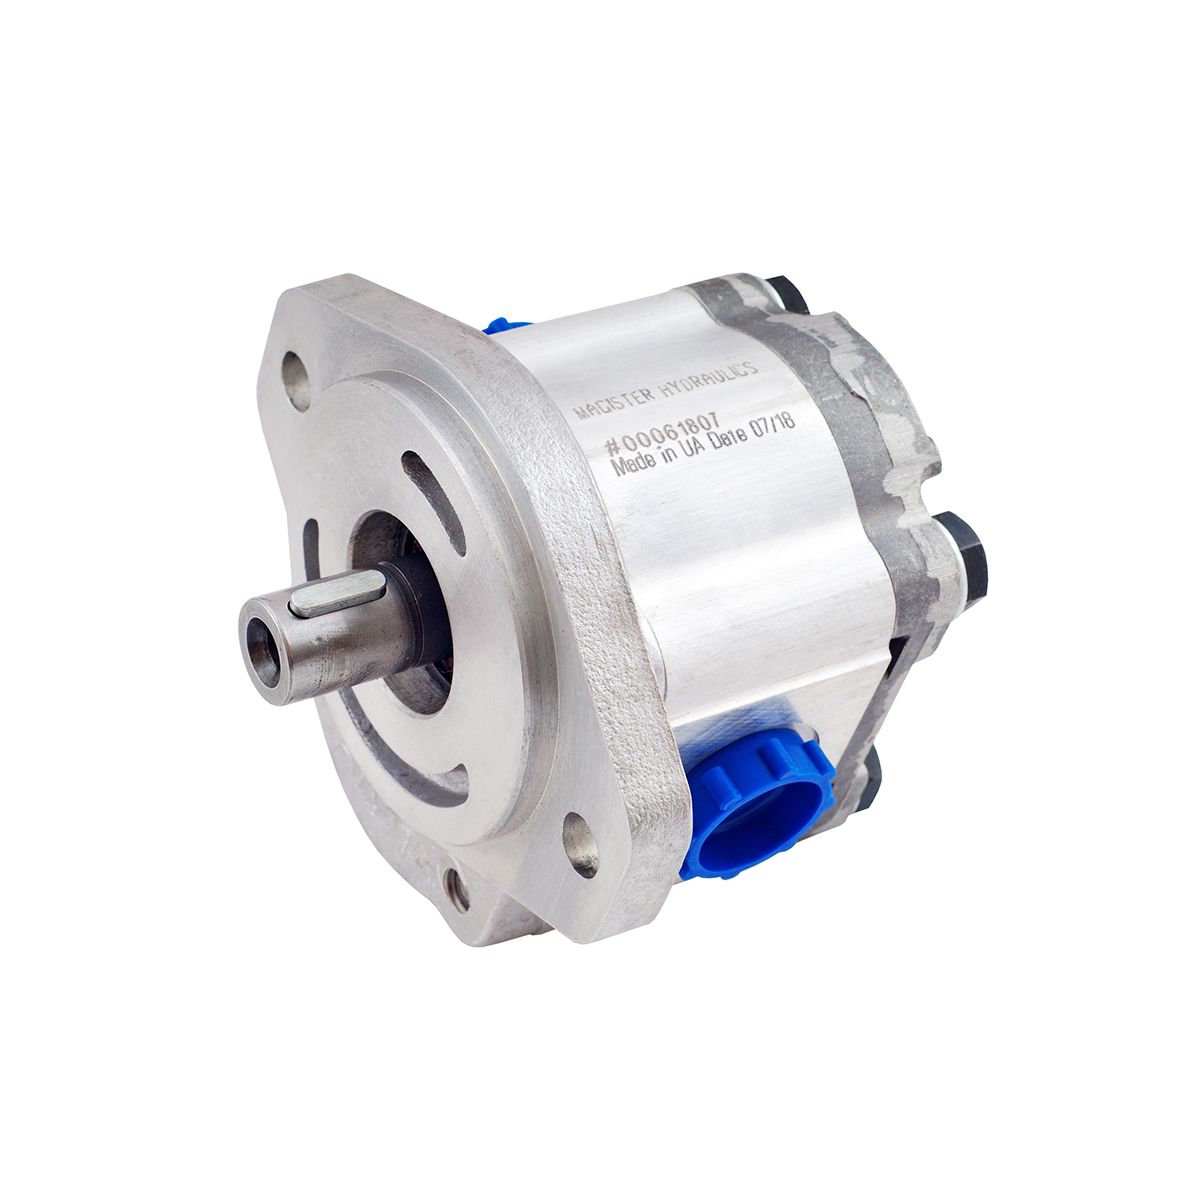 1.22 CID hydraulic gear pump, 5/8 keyed shaft clockwise gear pump | Magister Hydraulics